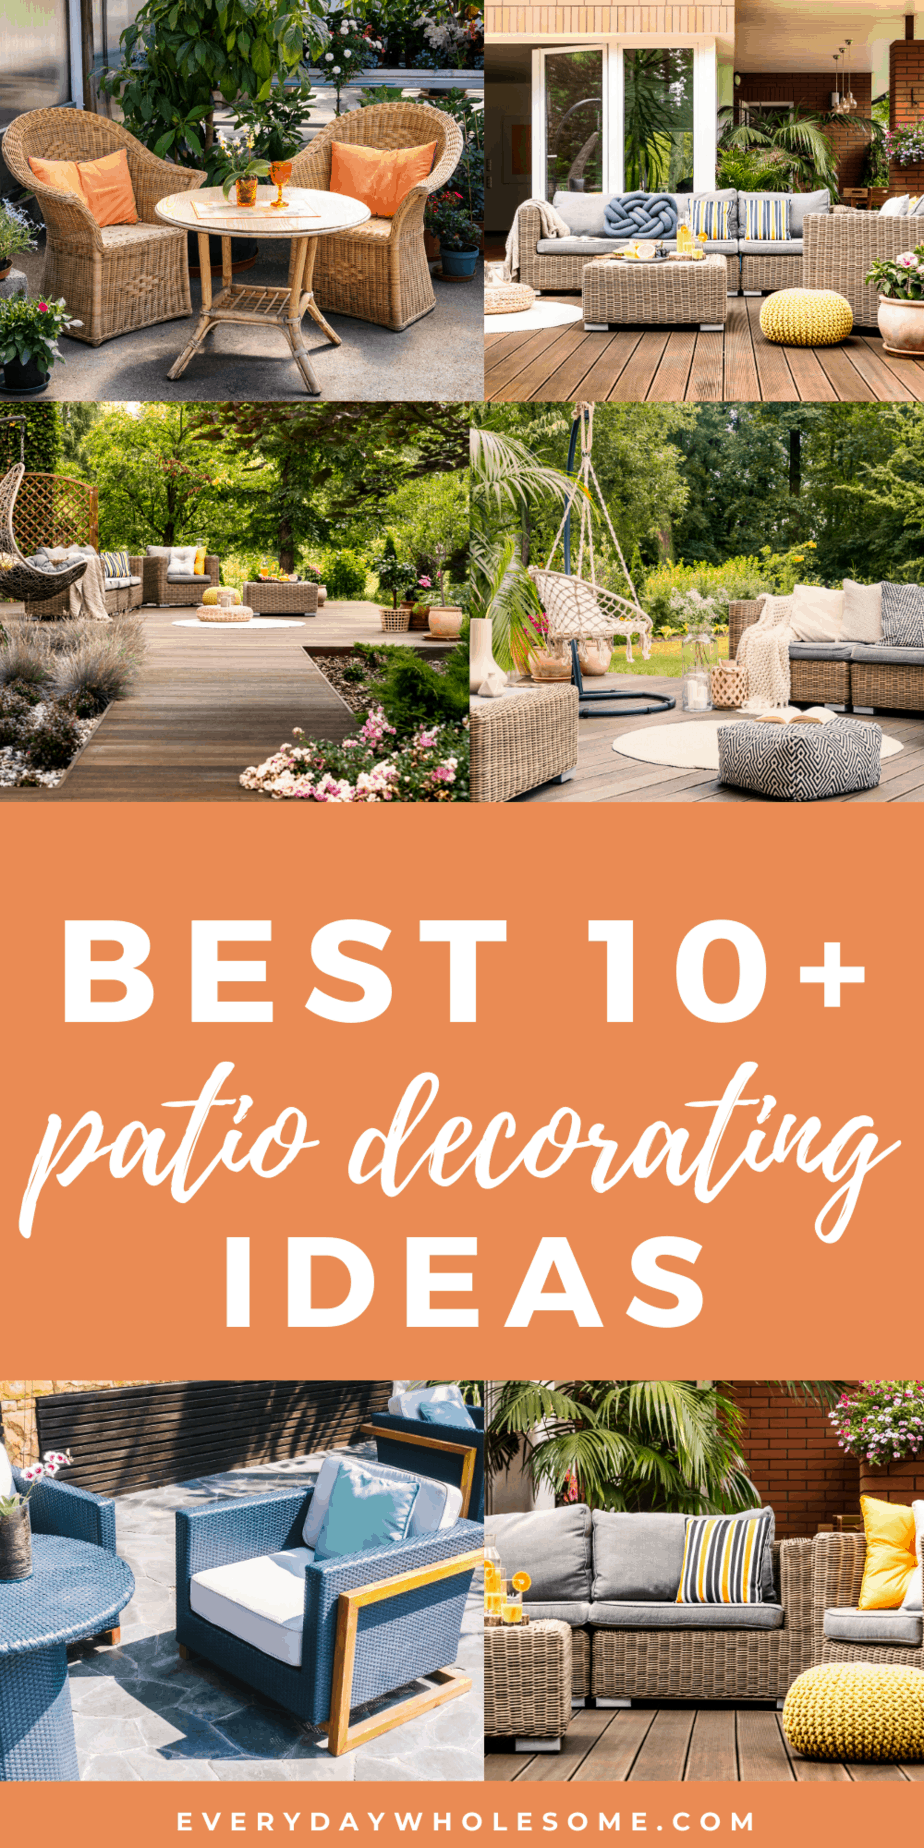 BEST 10 PATIO DECORATING IDEAS